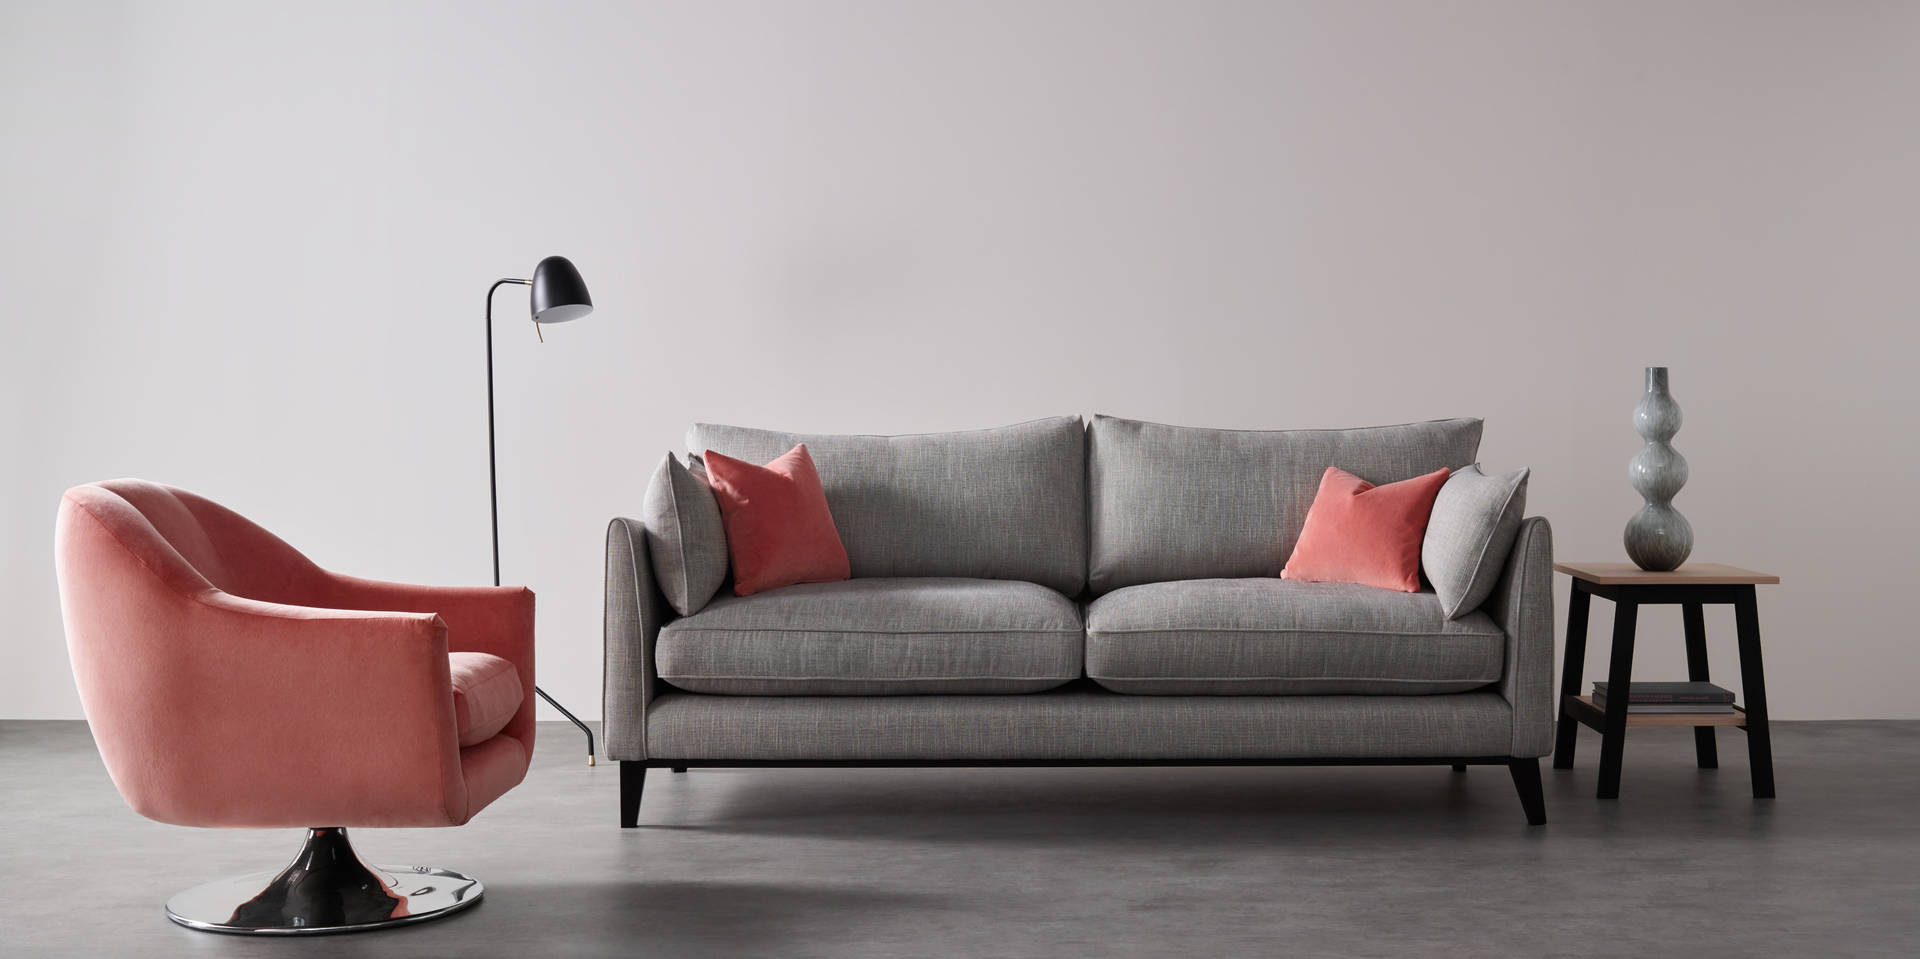 Albion Sofa Pic1a